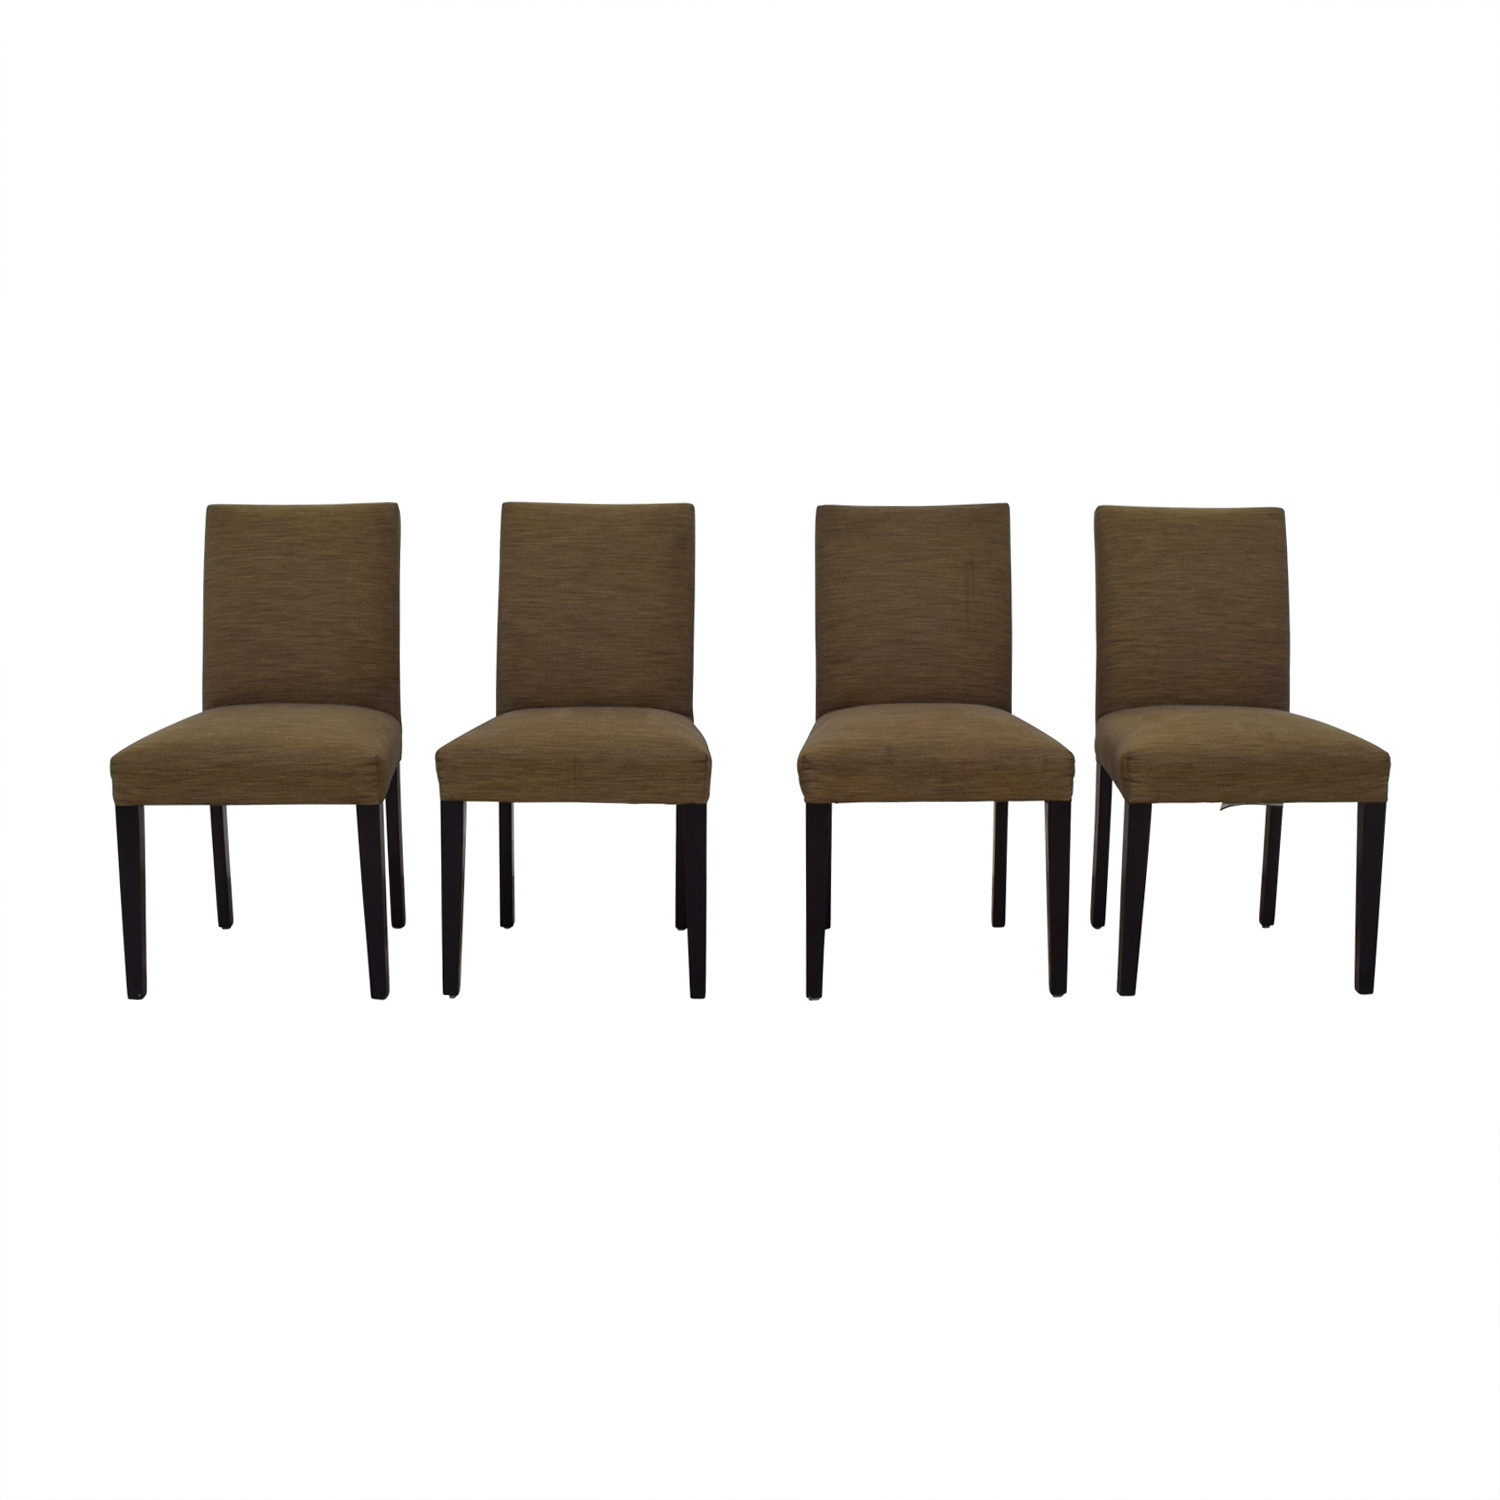 Room & Board Brown Upholstered Dining Chairs Room & Board